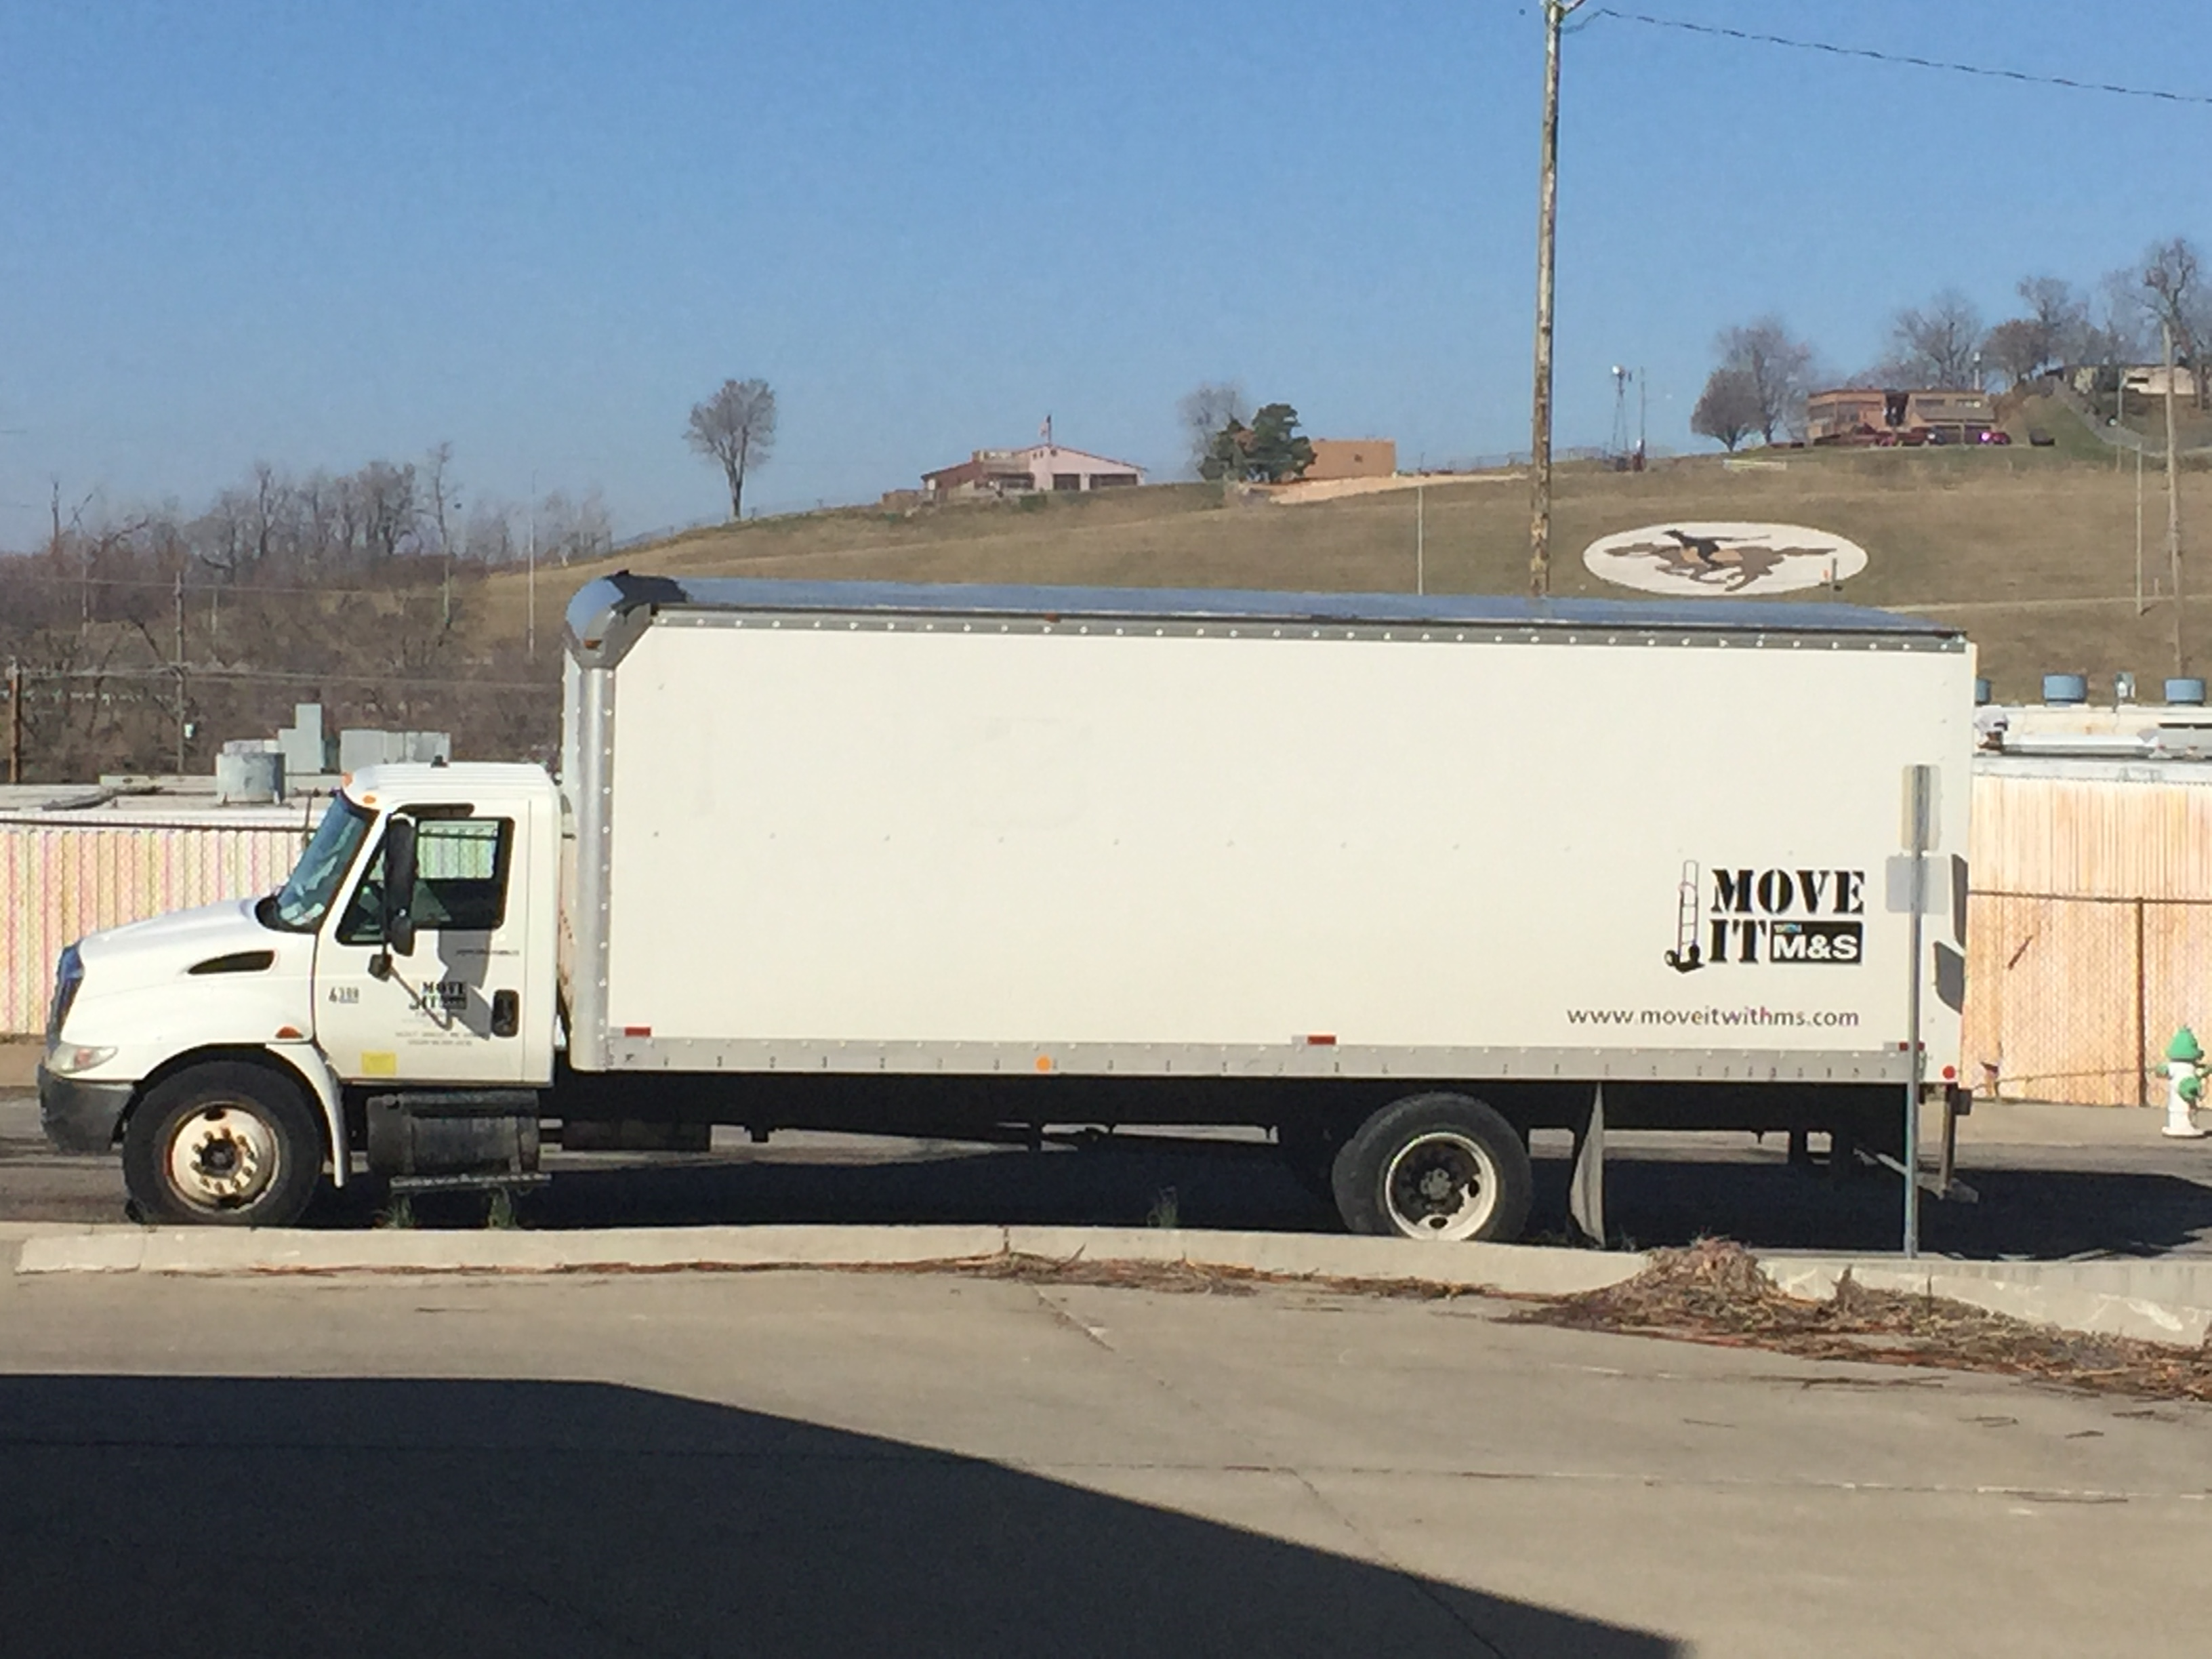 Move it with m s llc in saint joseph mo 64501 for Missouri motor carrier services